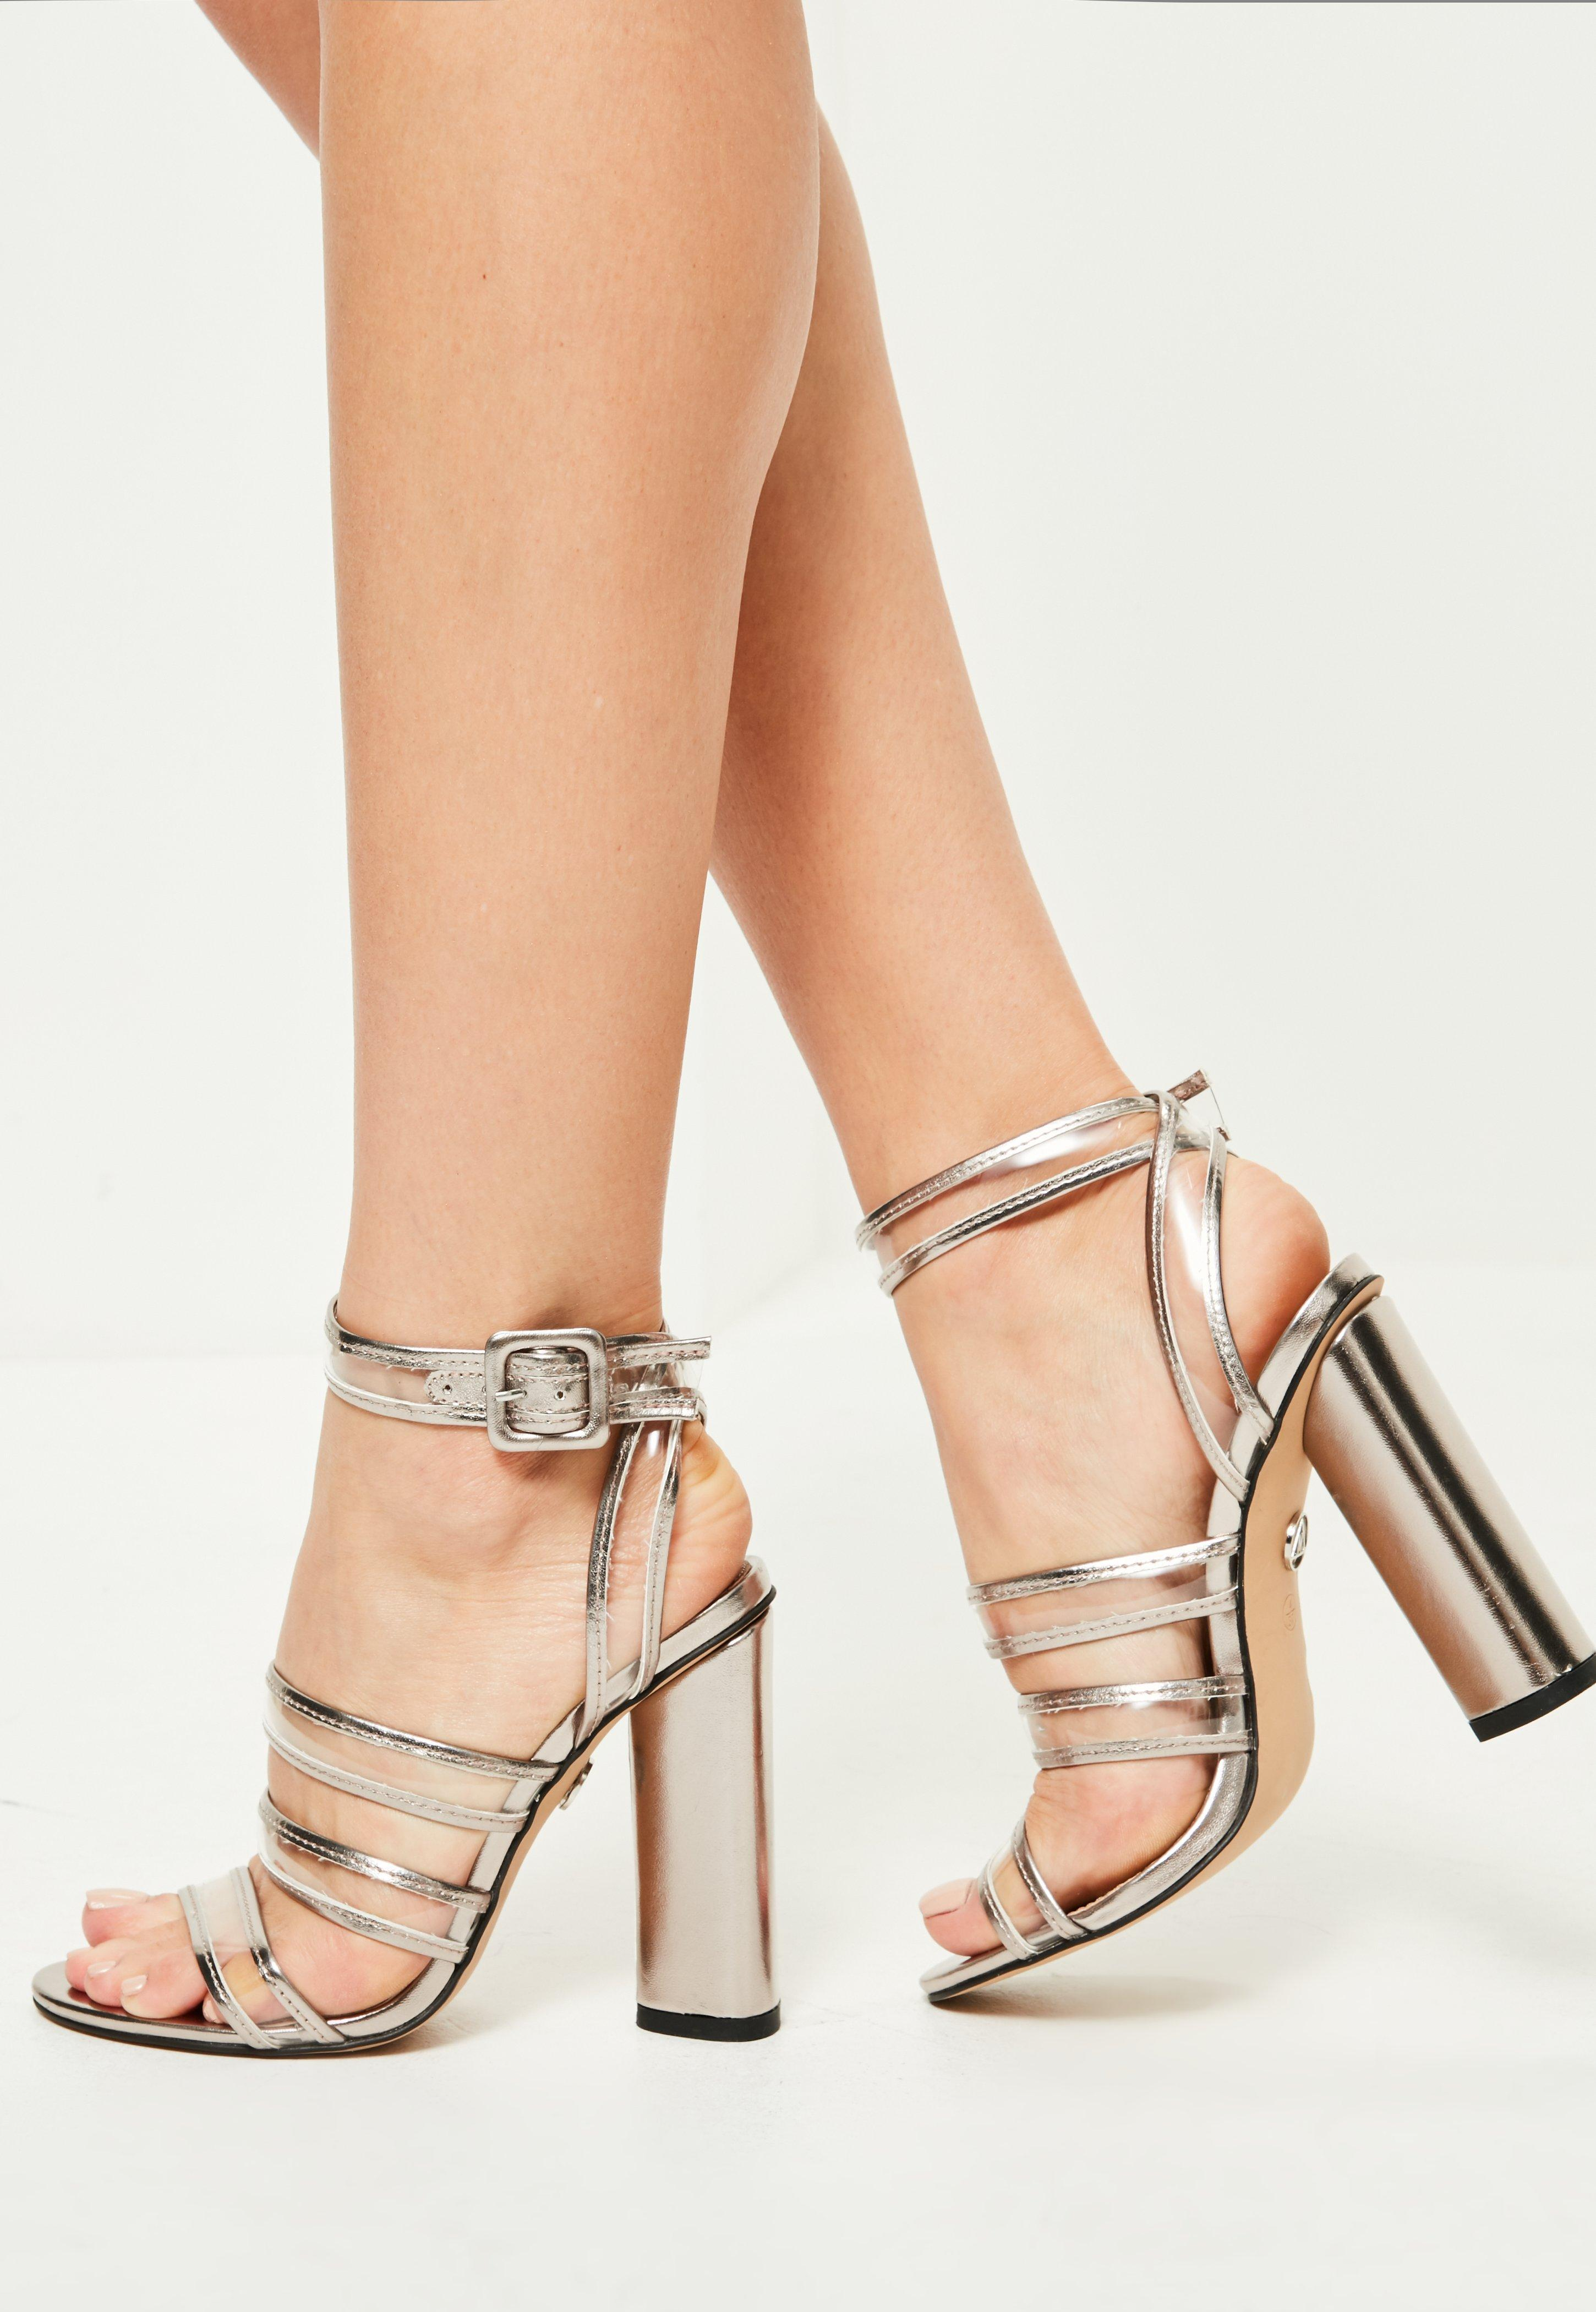 faaaf9395a74 Lyst - Missguided Silver Clear Multi Strap Block Heeled Sandals in ...